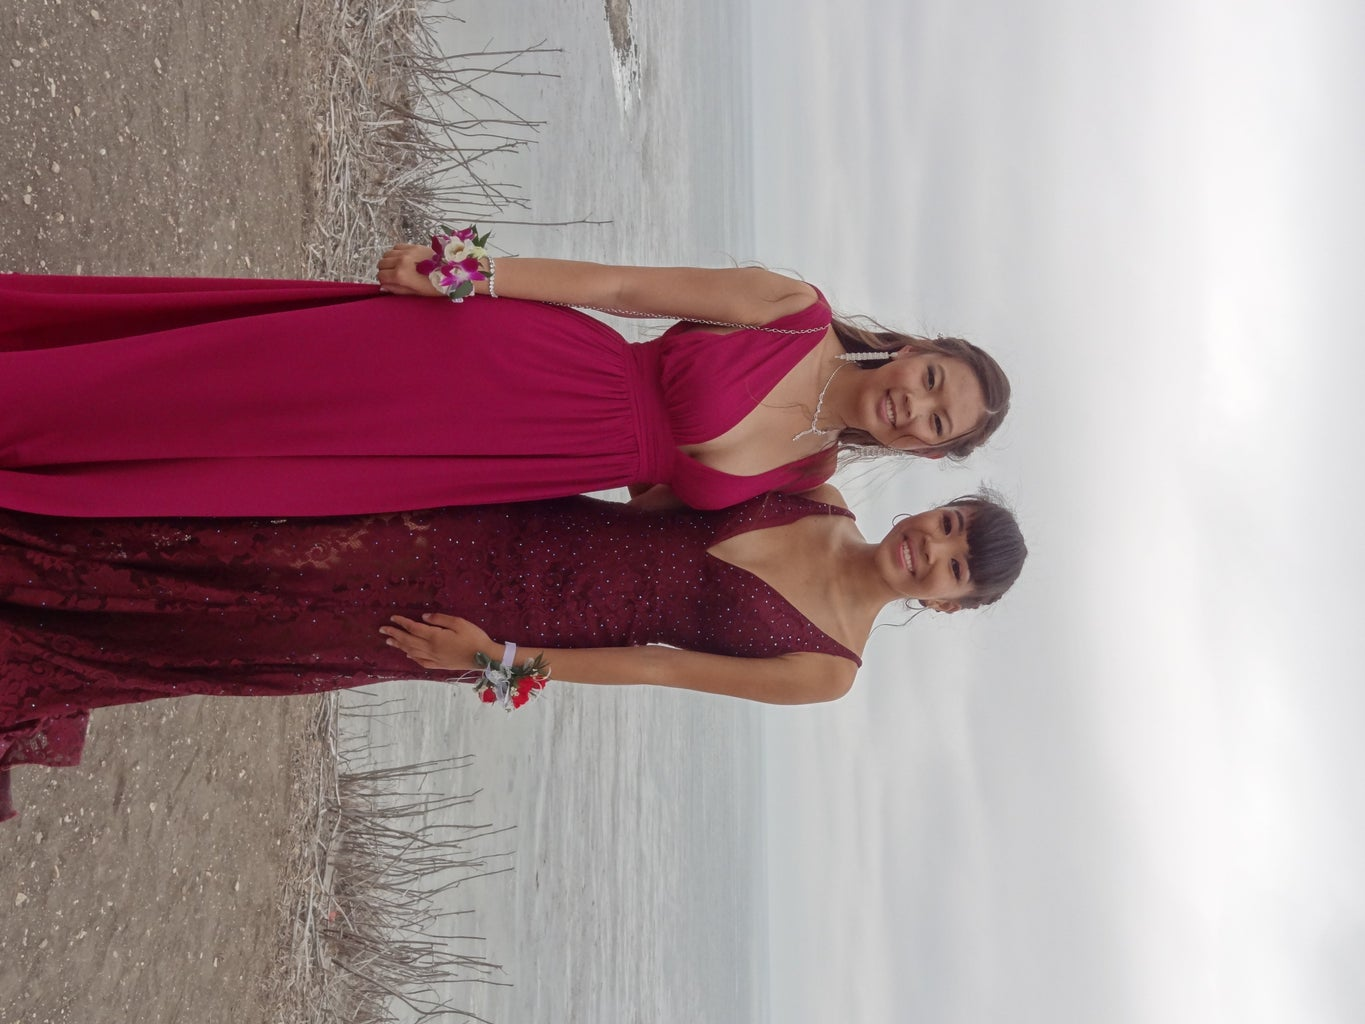 friends at high school prom